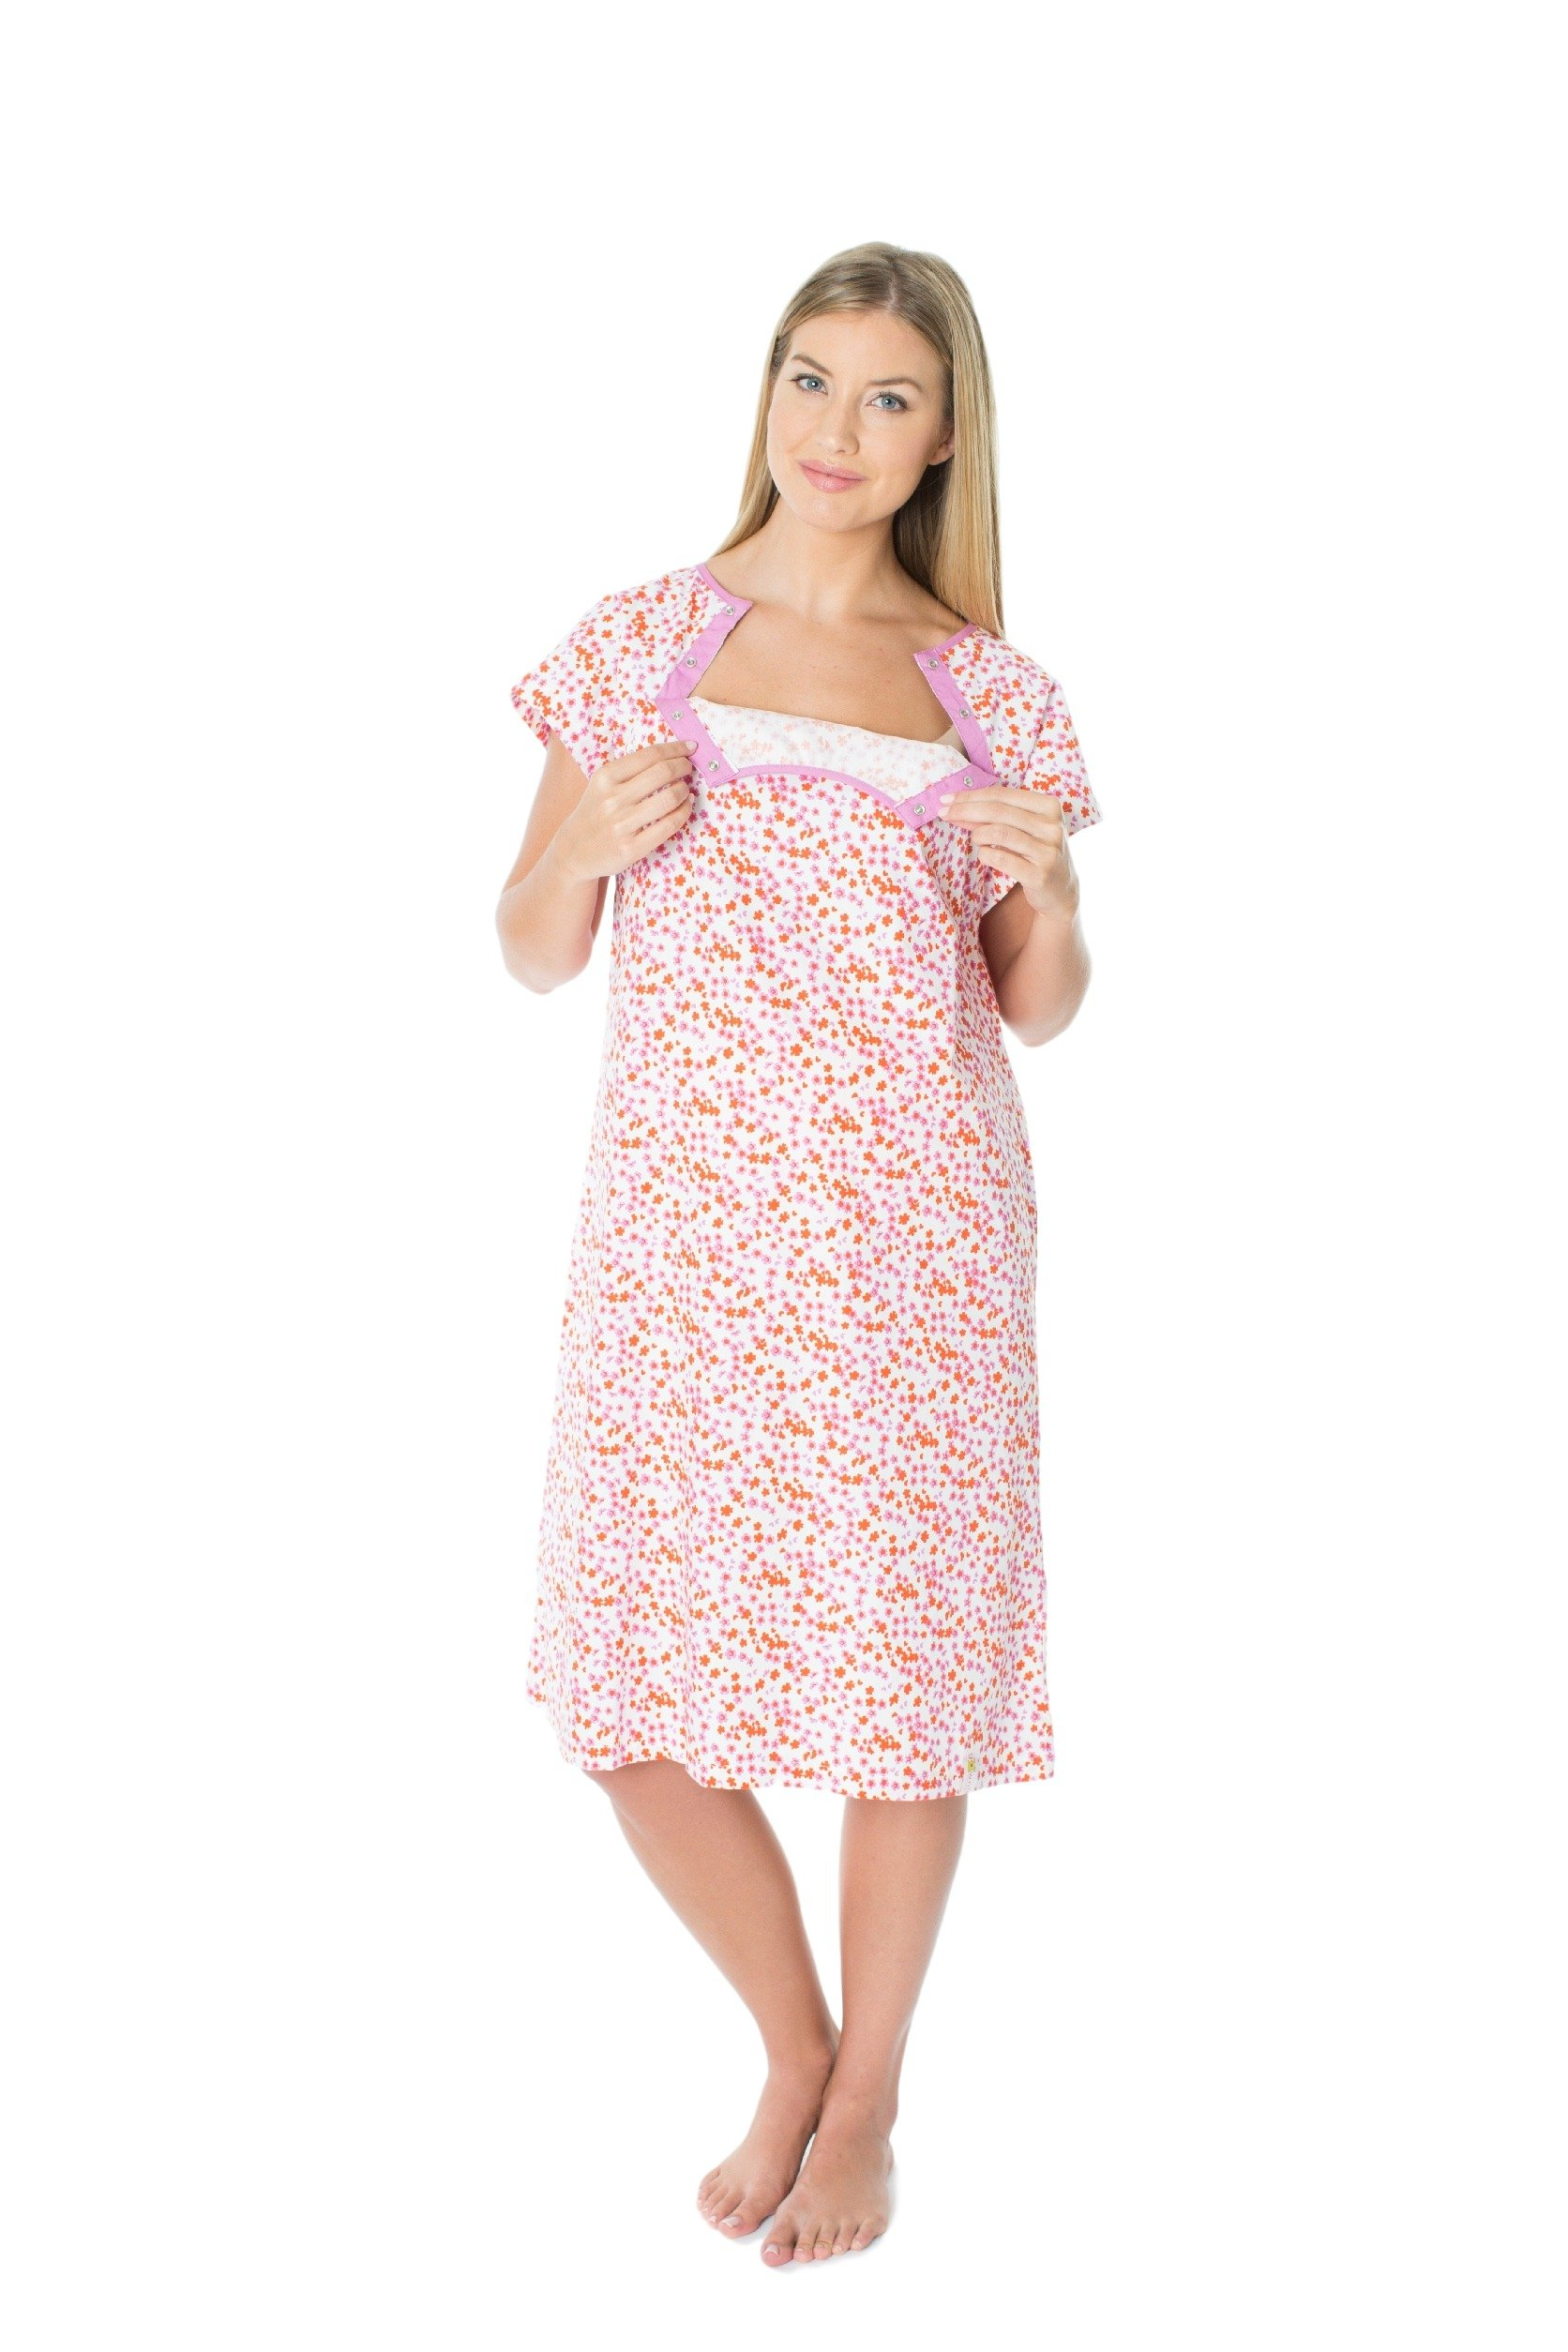 Gownies - Labor & Delivery Maternity Hospital Gown (L/XL pre ...